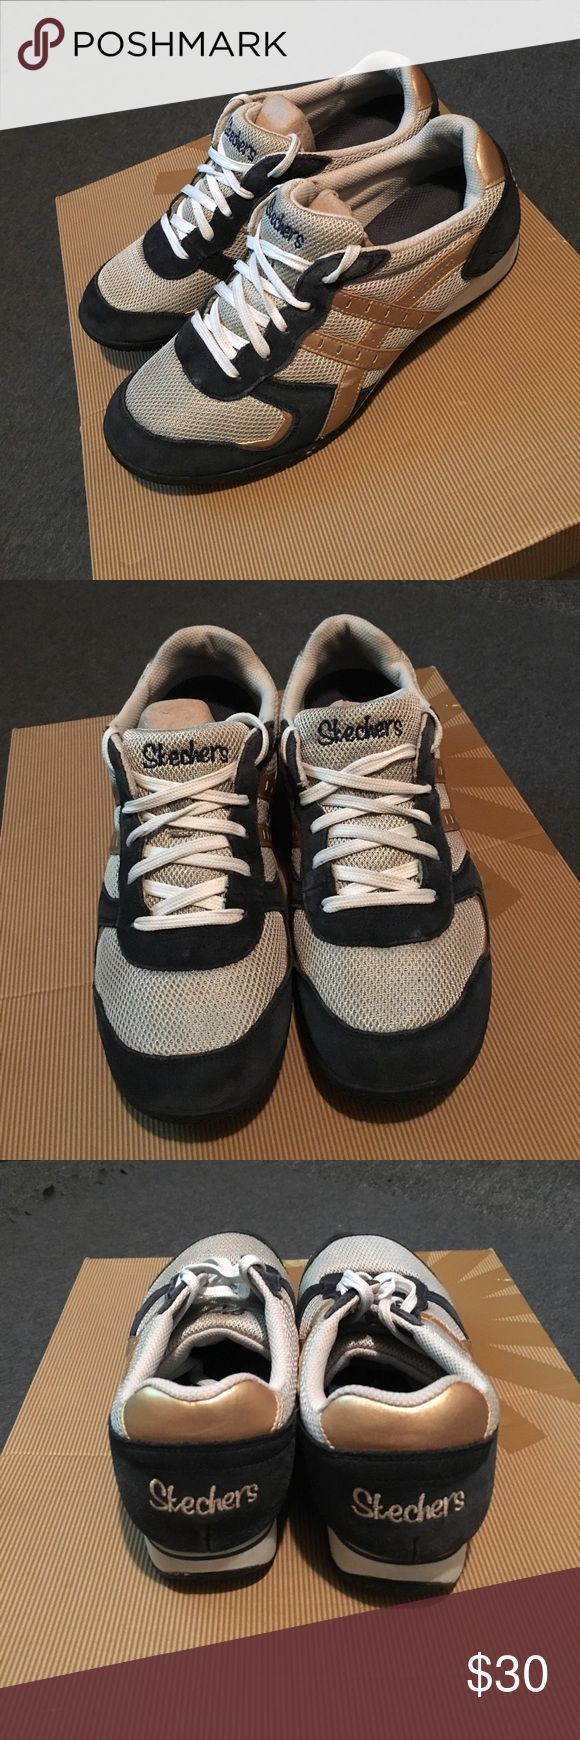 Sketchers sneakers Very comfortable sketchers sneakers breathable size 9.5 women gray gold and blue gently worn Skechers Shoes Sneakers